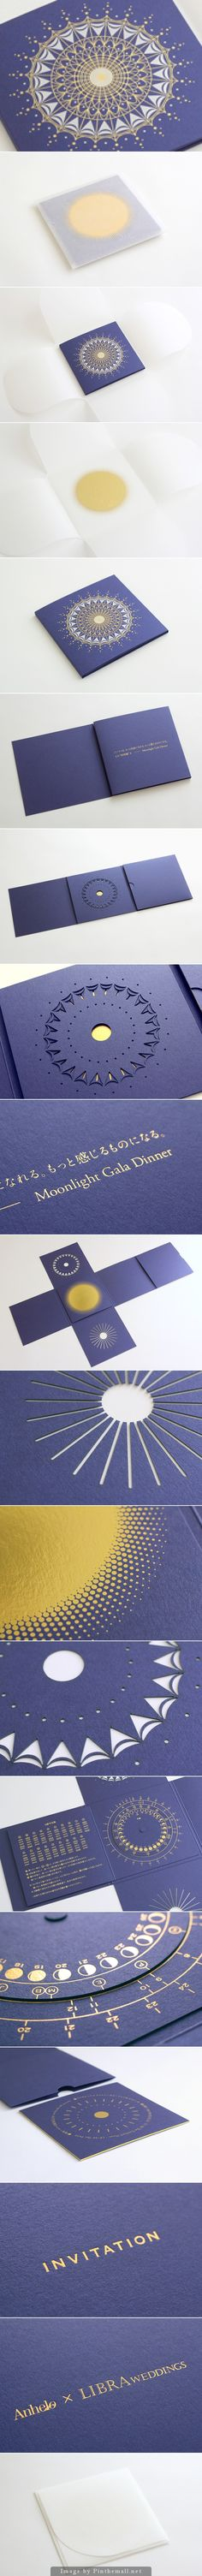 Anhelo × LIBRA WEDDINGS the most gorgeous wedding invitation packaging curated by Packaging Diva PD Wedding Invitation Packages, Gala Invitation, Brand Packaging, Packaging Design, Stationary Branding, Stationery, Furniture Brochure, Album Cover Design, Japanese Graphic Design